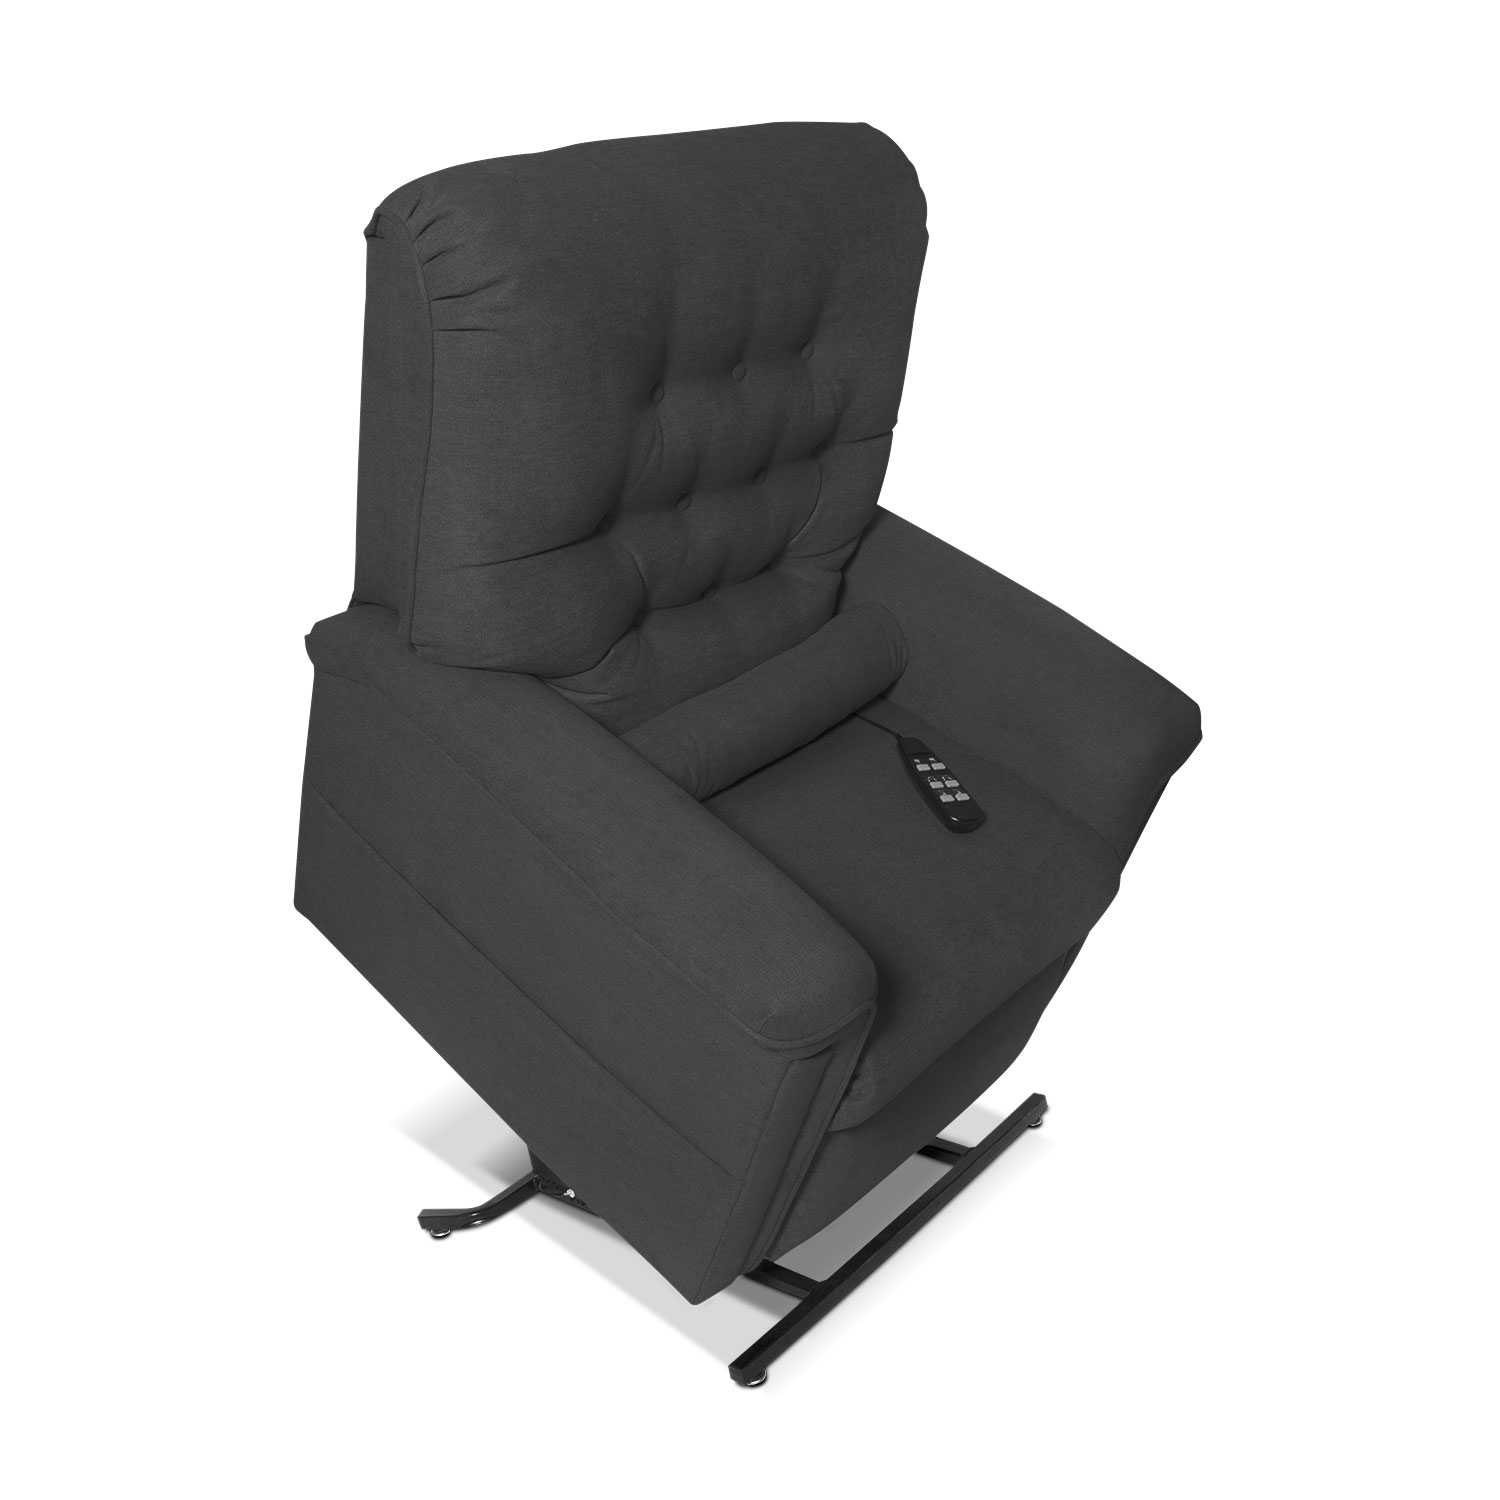 Marcy Lift Chair - Gray